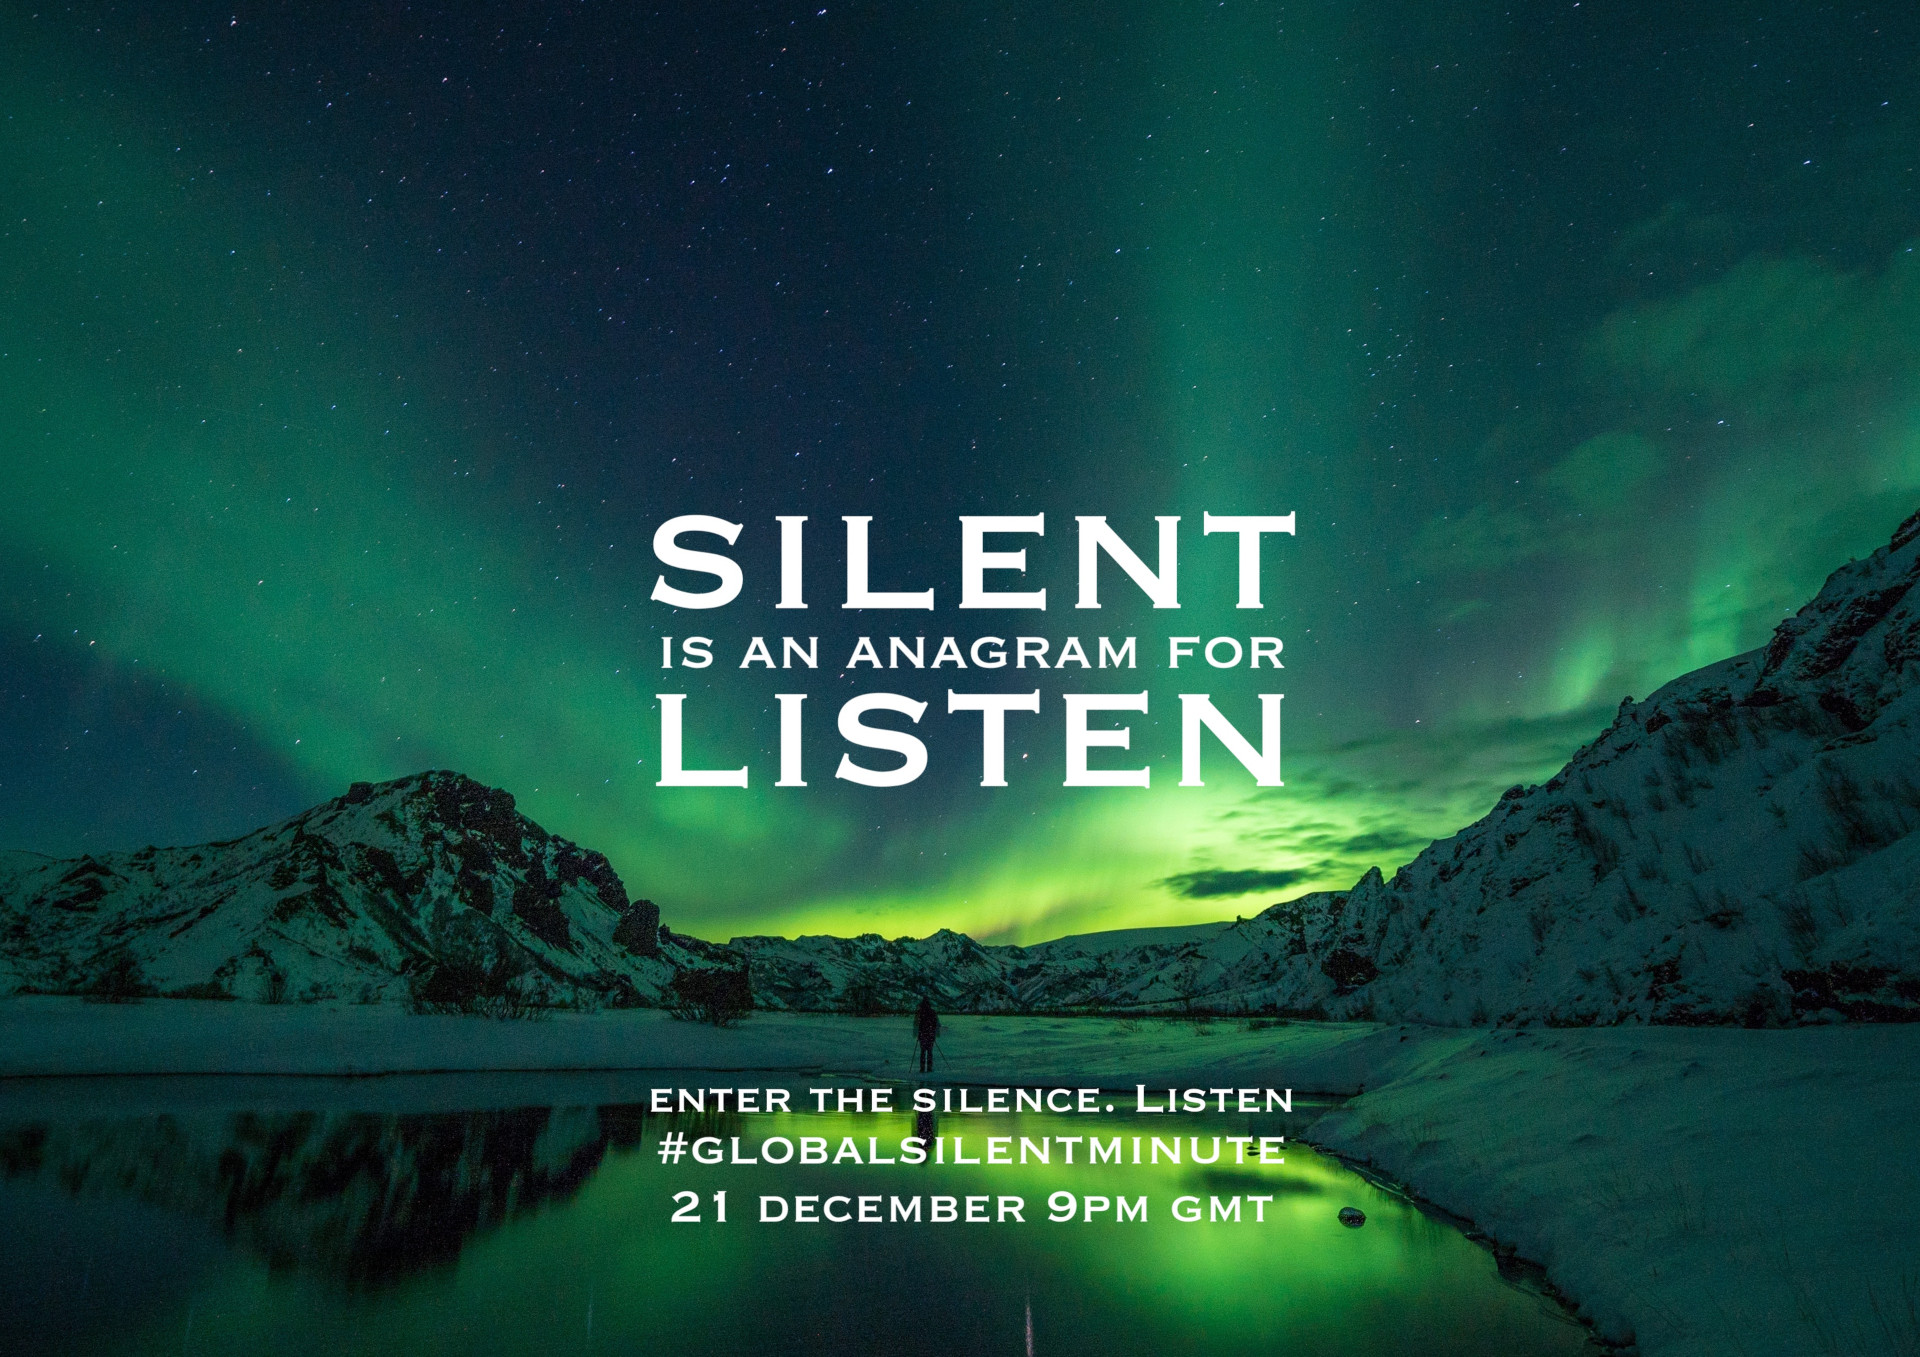 5.Silent is an anagram for Listen